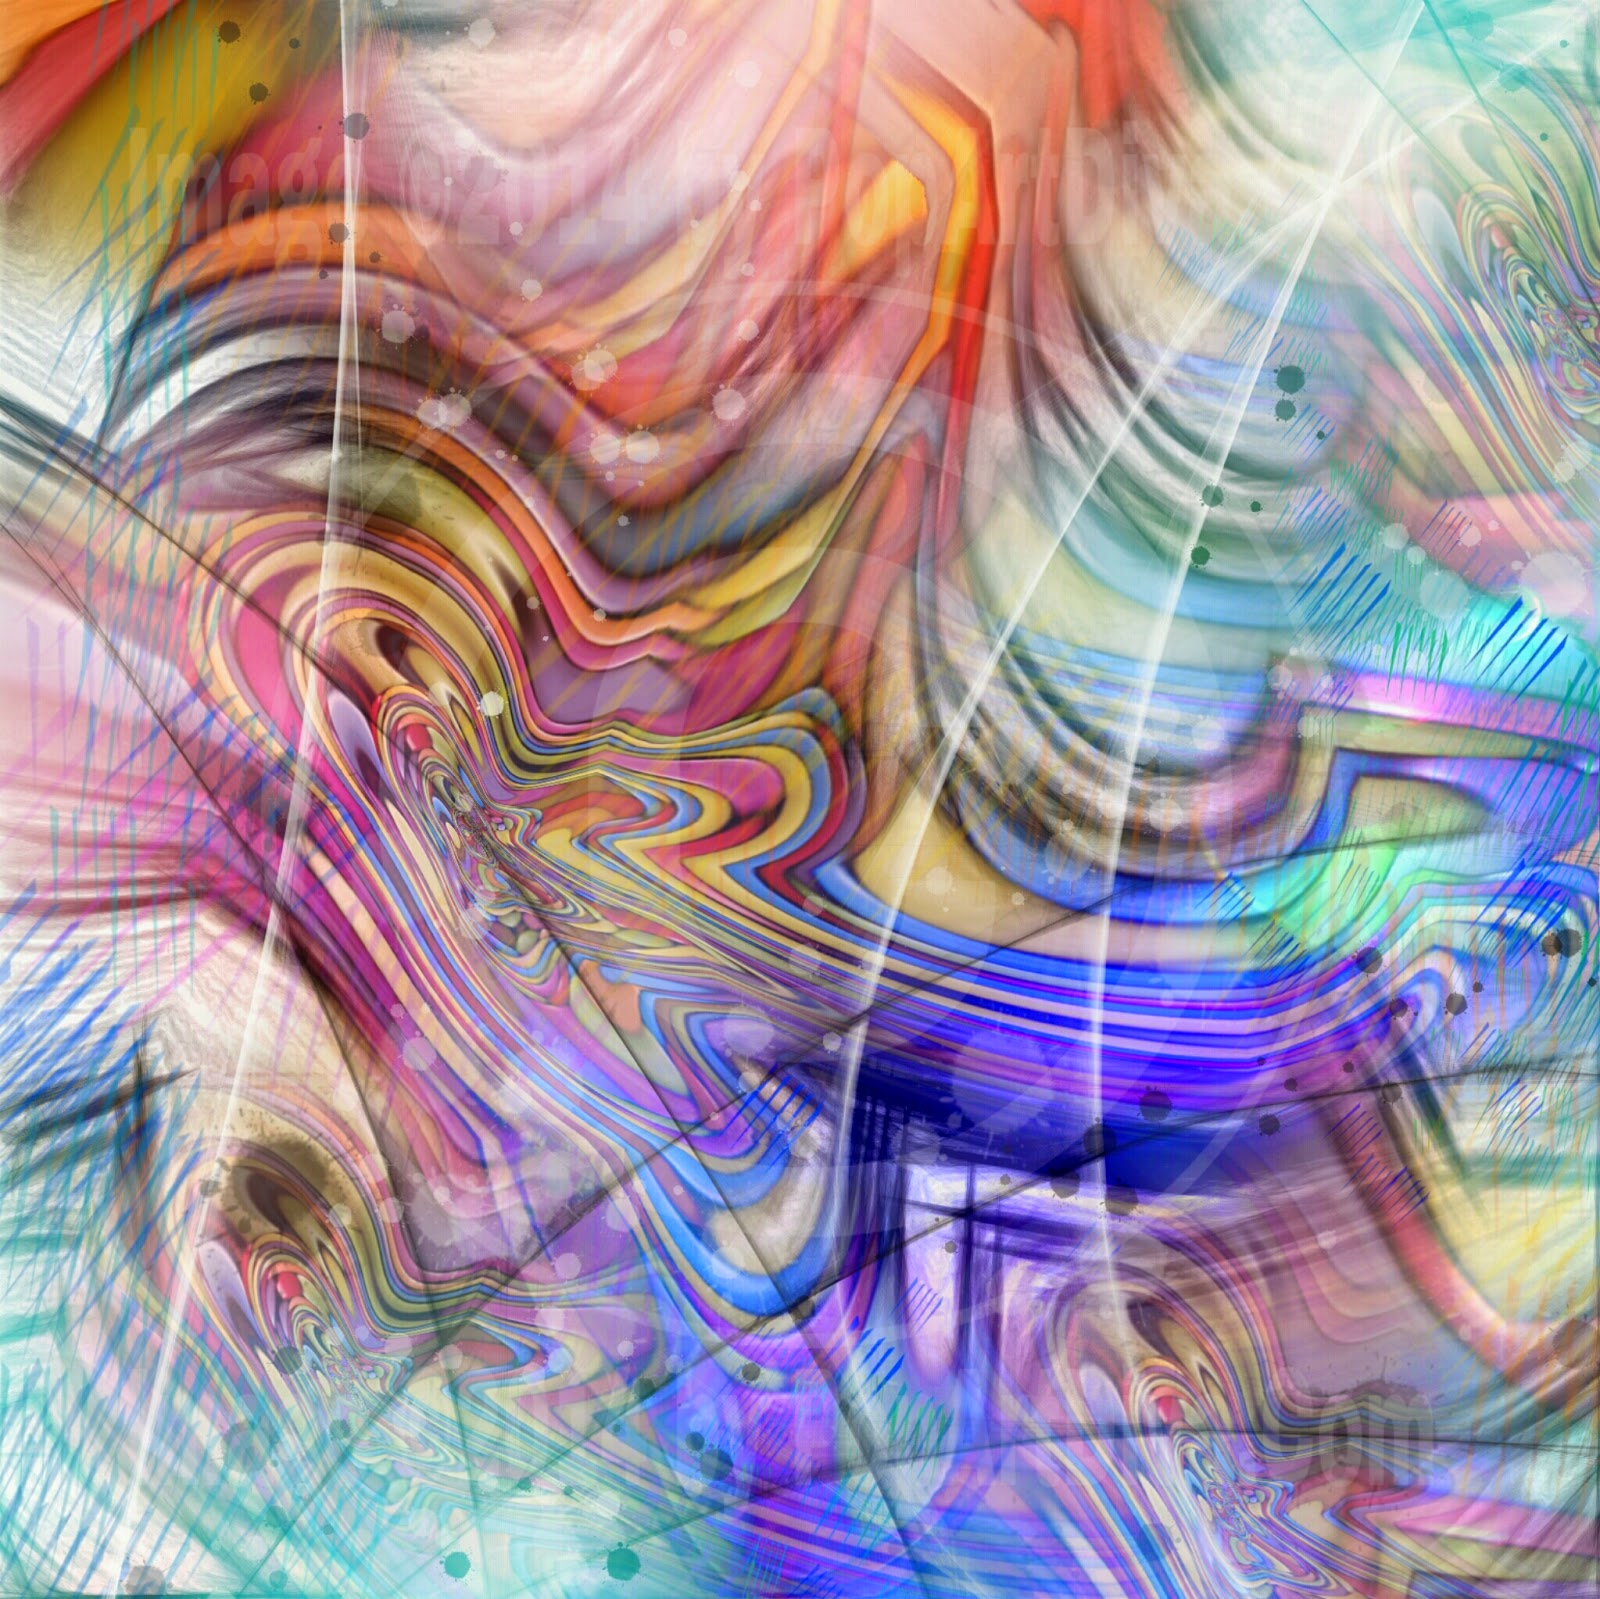 http://store.payloadz.com/details/2084840-photos-and-images-abstract-squished-universe-abstract-web-graphic.html